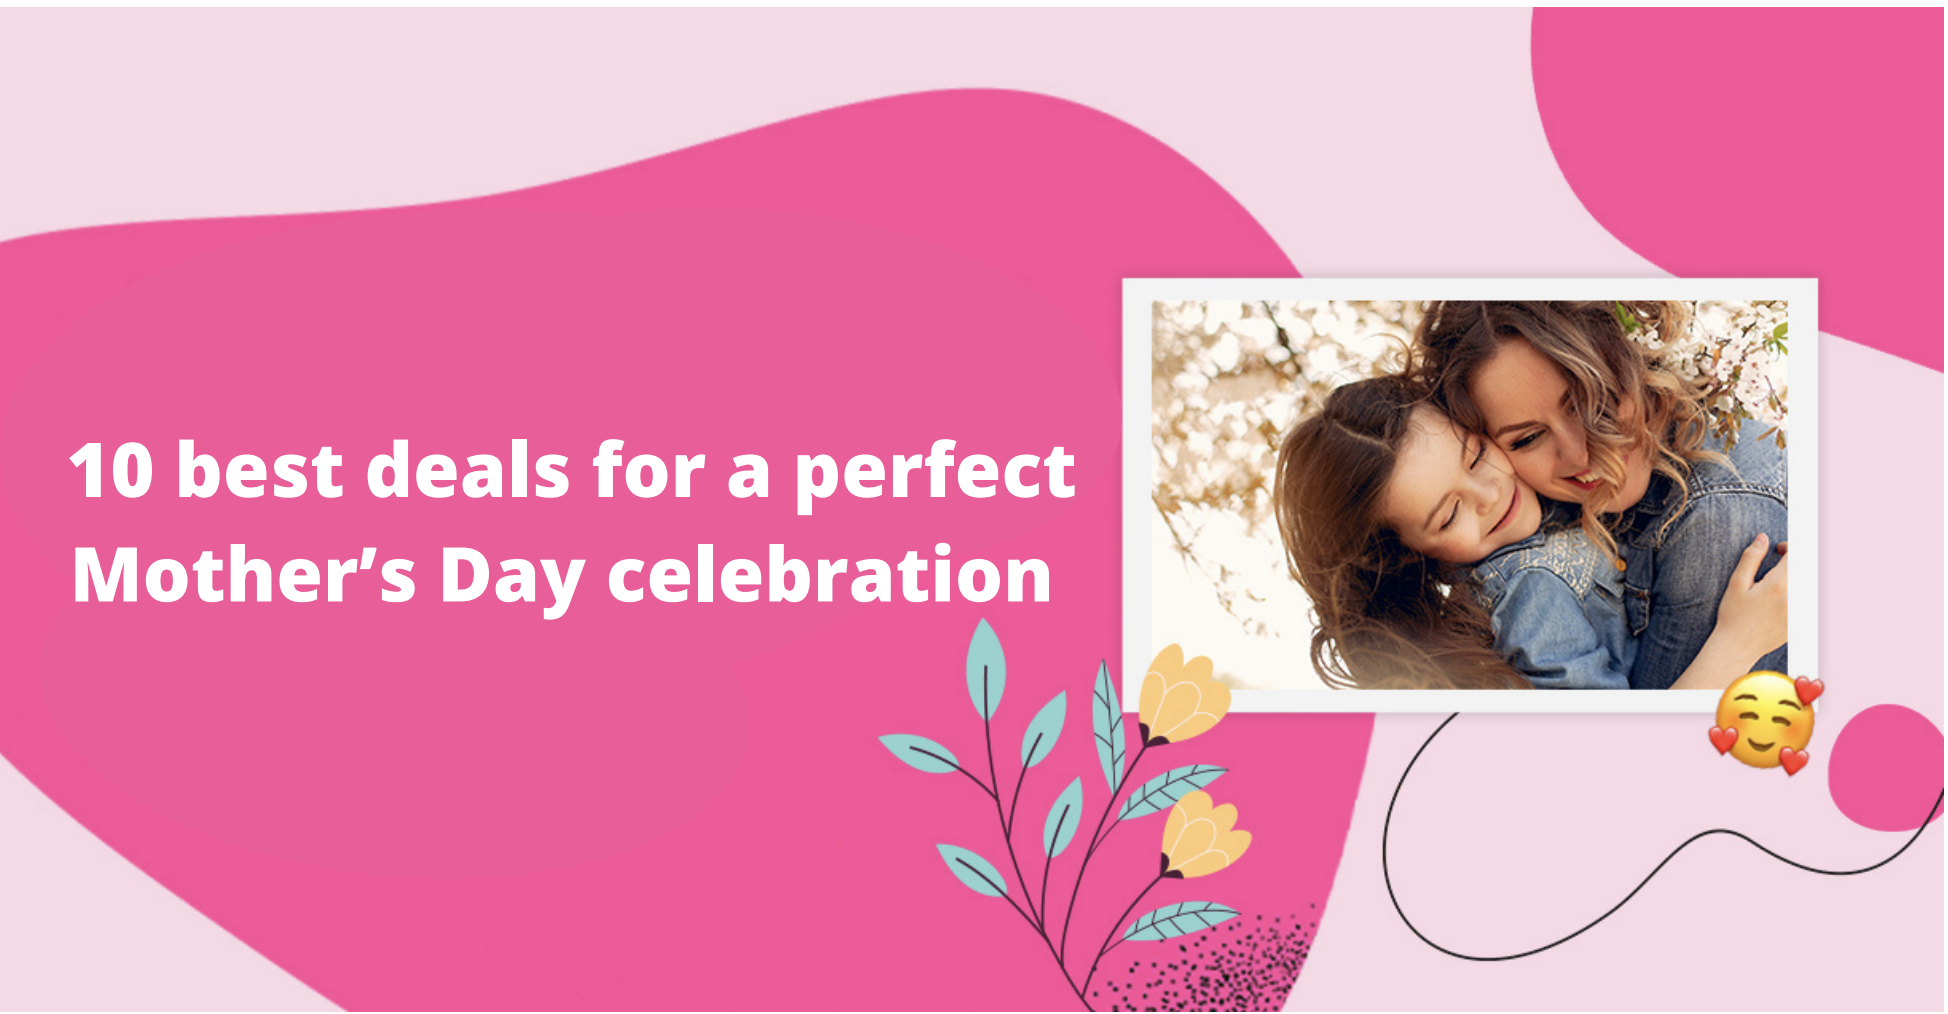 10 best deals for a perfect Mother's Day celebration